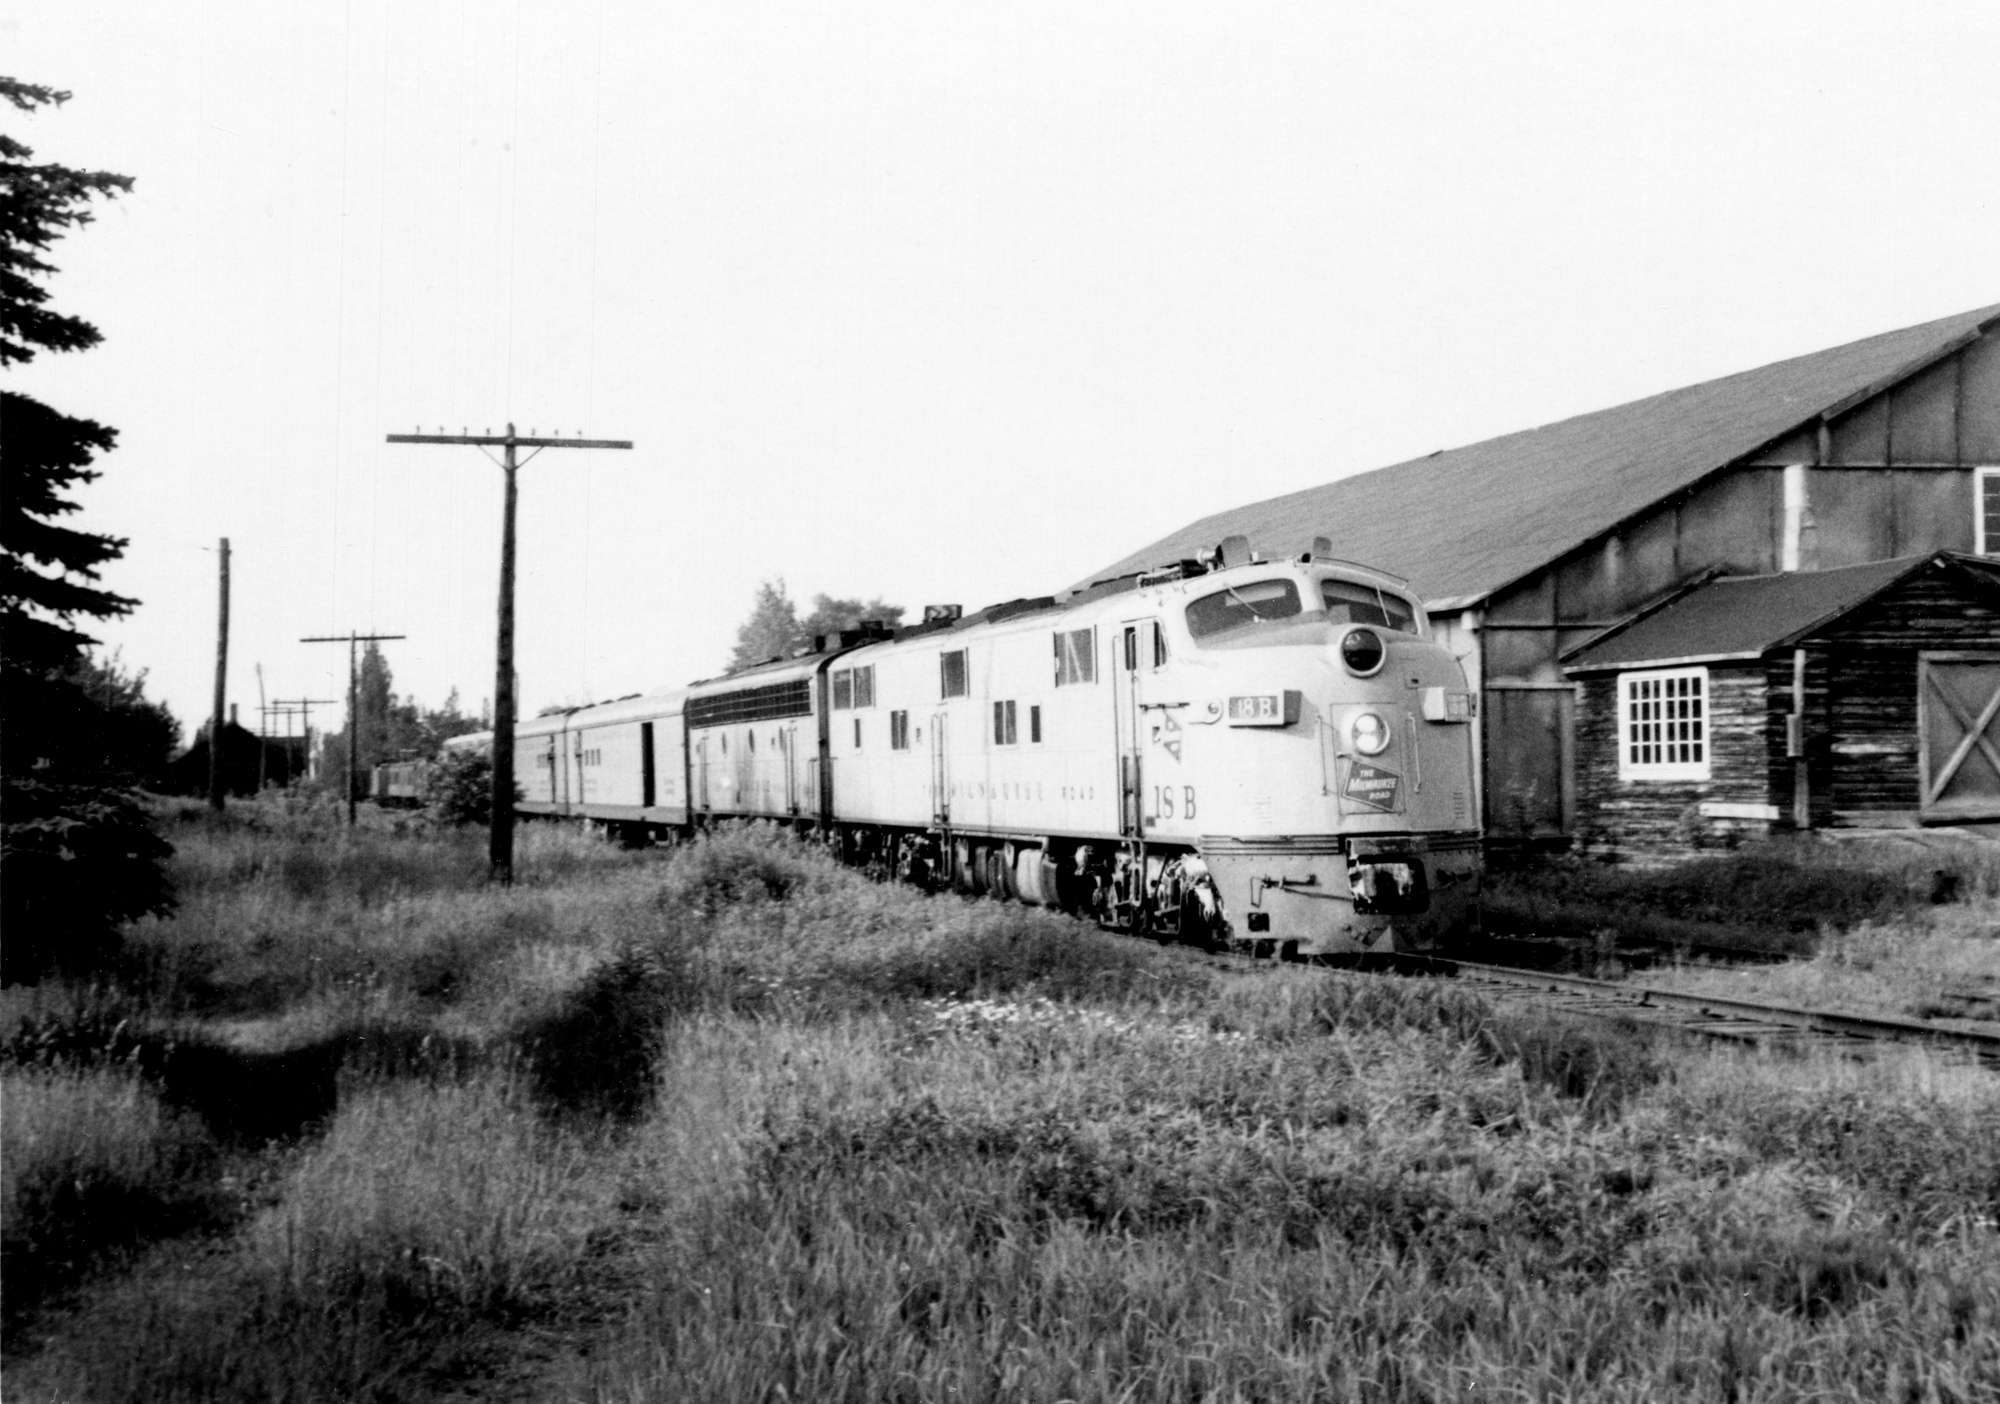 The Copper Country Limited